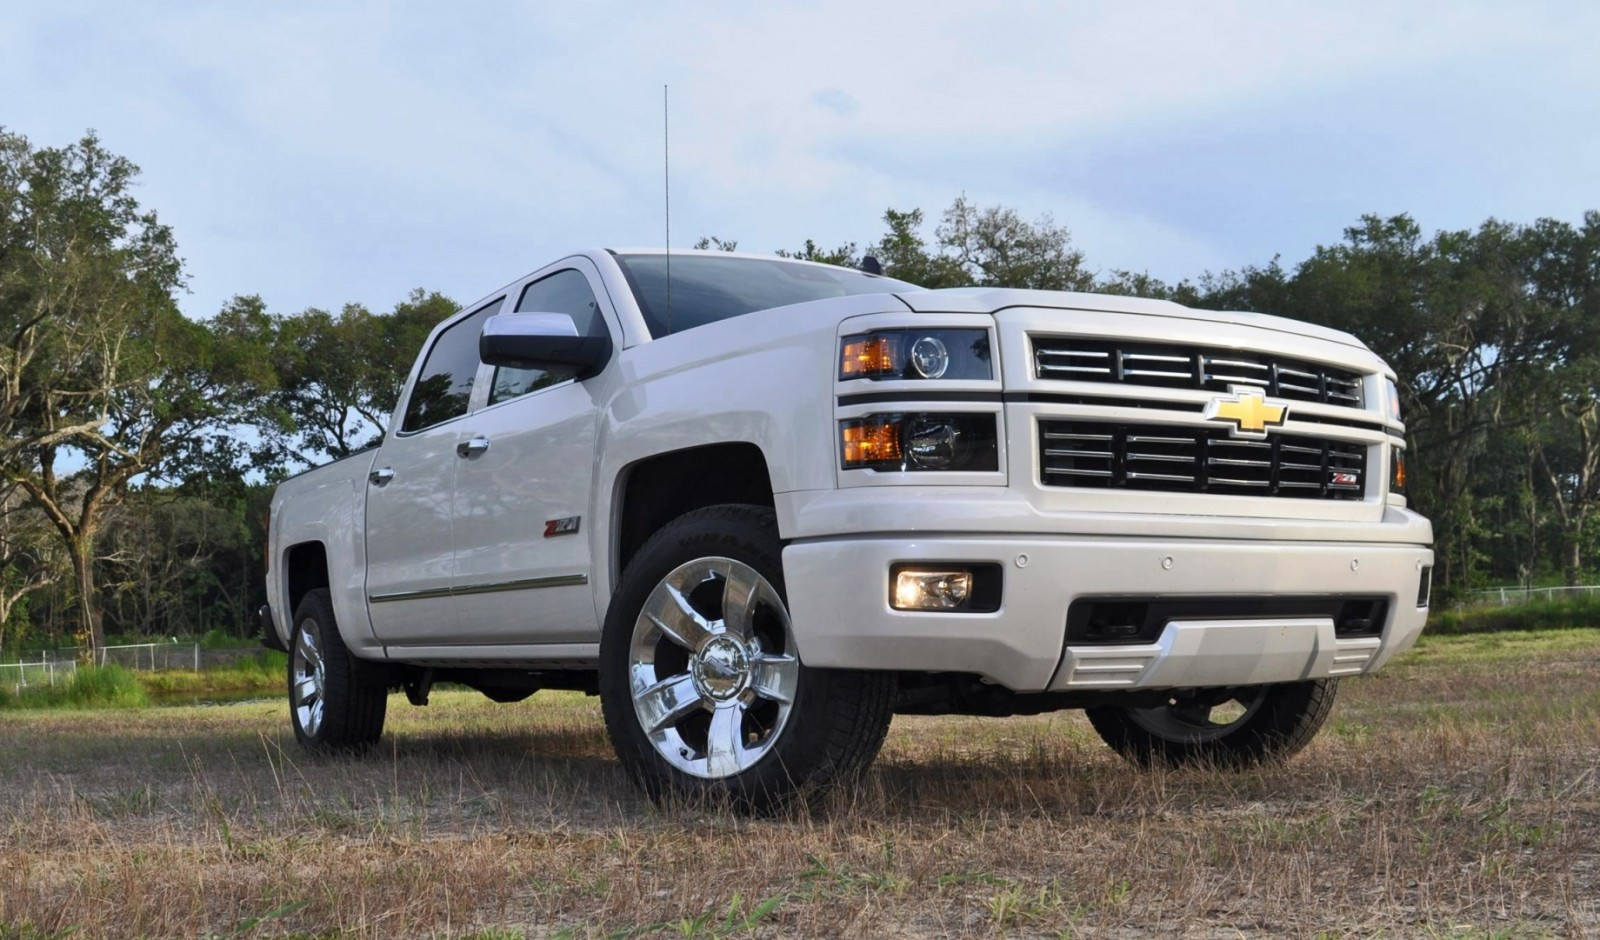 Rally Edition Silverado >> 2016 Chevrolet SILVERADO Black Out Edition is $35k and Dripping Wet Gloss!